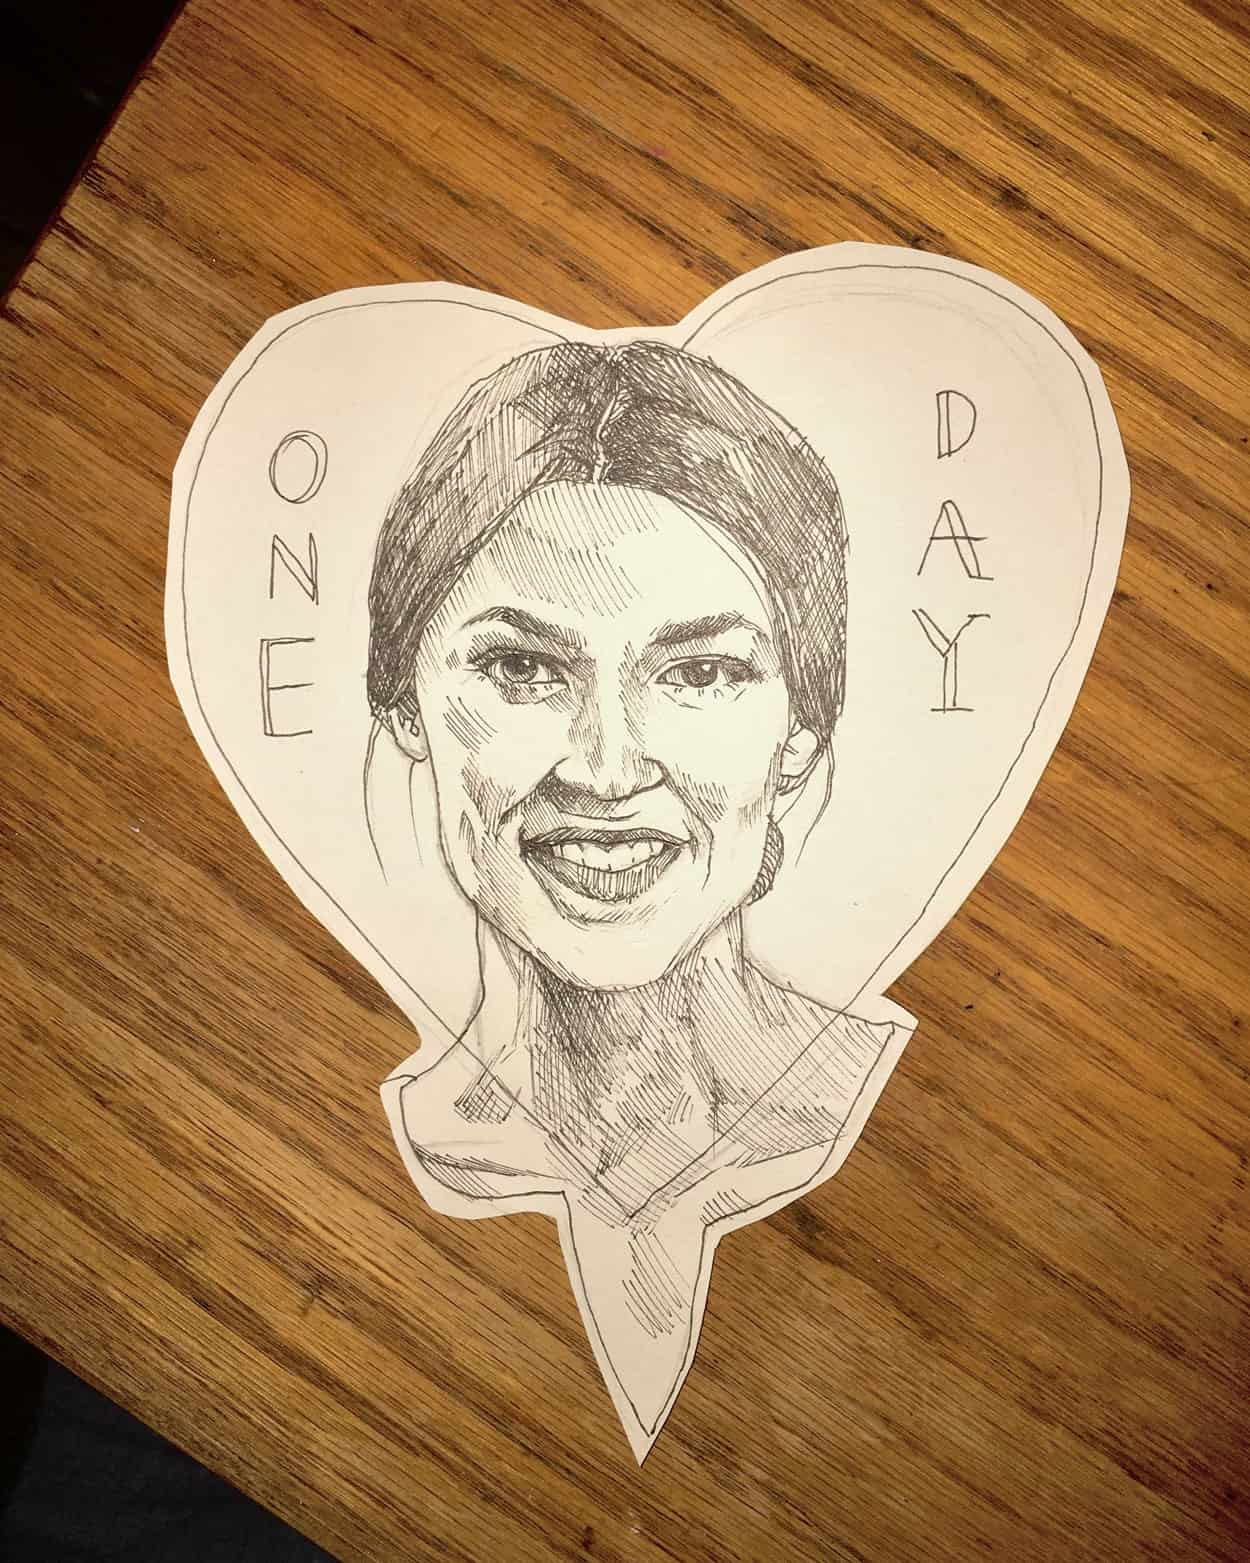 Hand drawn image of Alexandria Occasio Cortez inside a cutout of a heart. The text one day is on either side of her face.